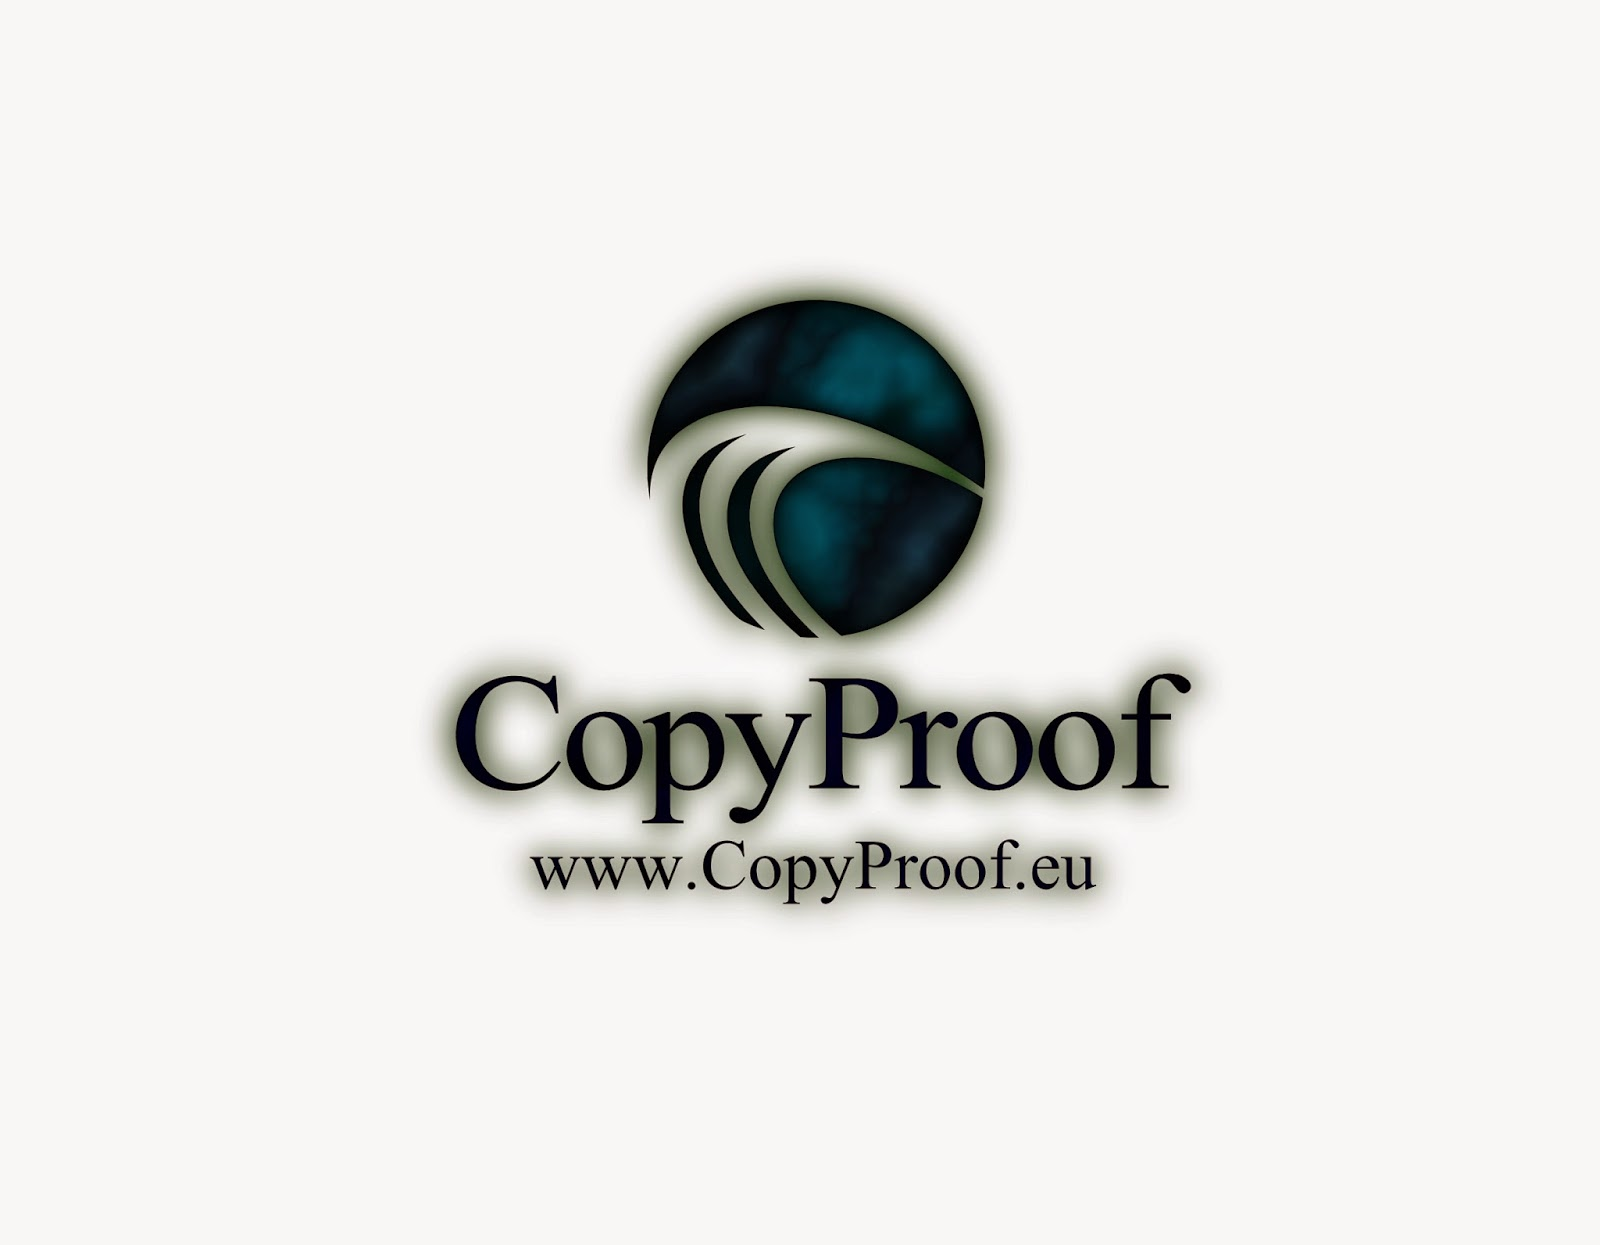 Anti-Copy Security Paper, Copy Proof Paper, Copy Resistant Paper, Void Paper, Secure Paper, Security Paper, Tamper Proof Paper